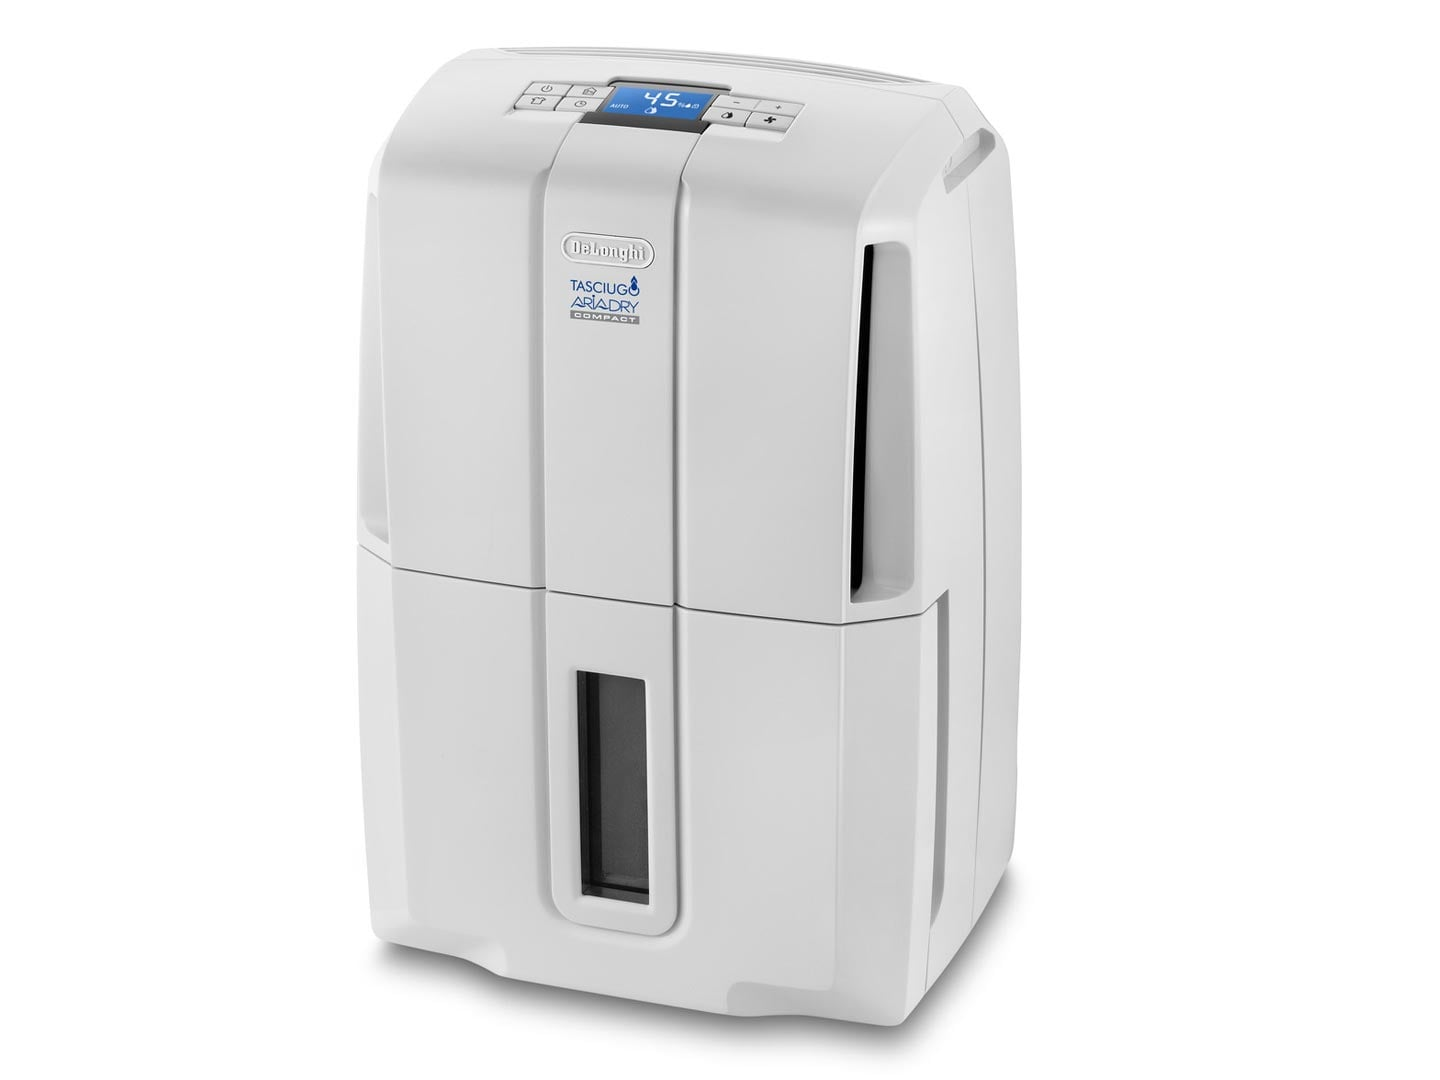 DDS 25 Delonghi France